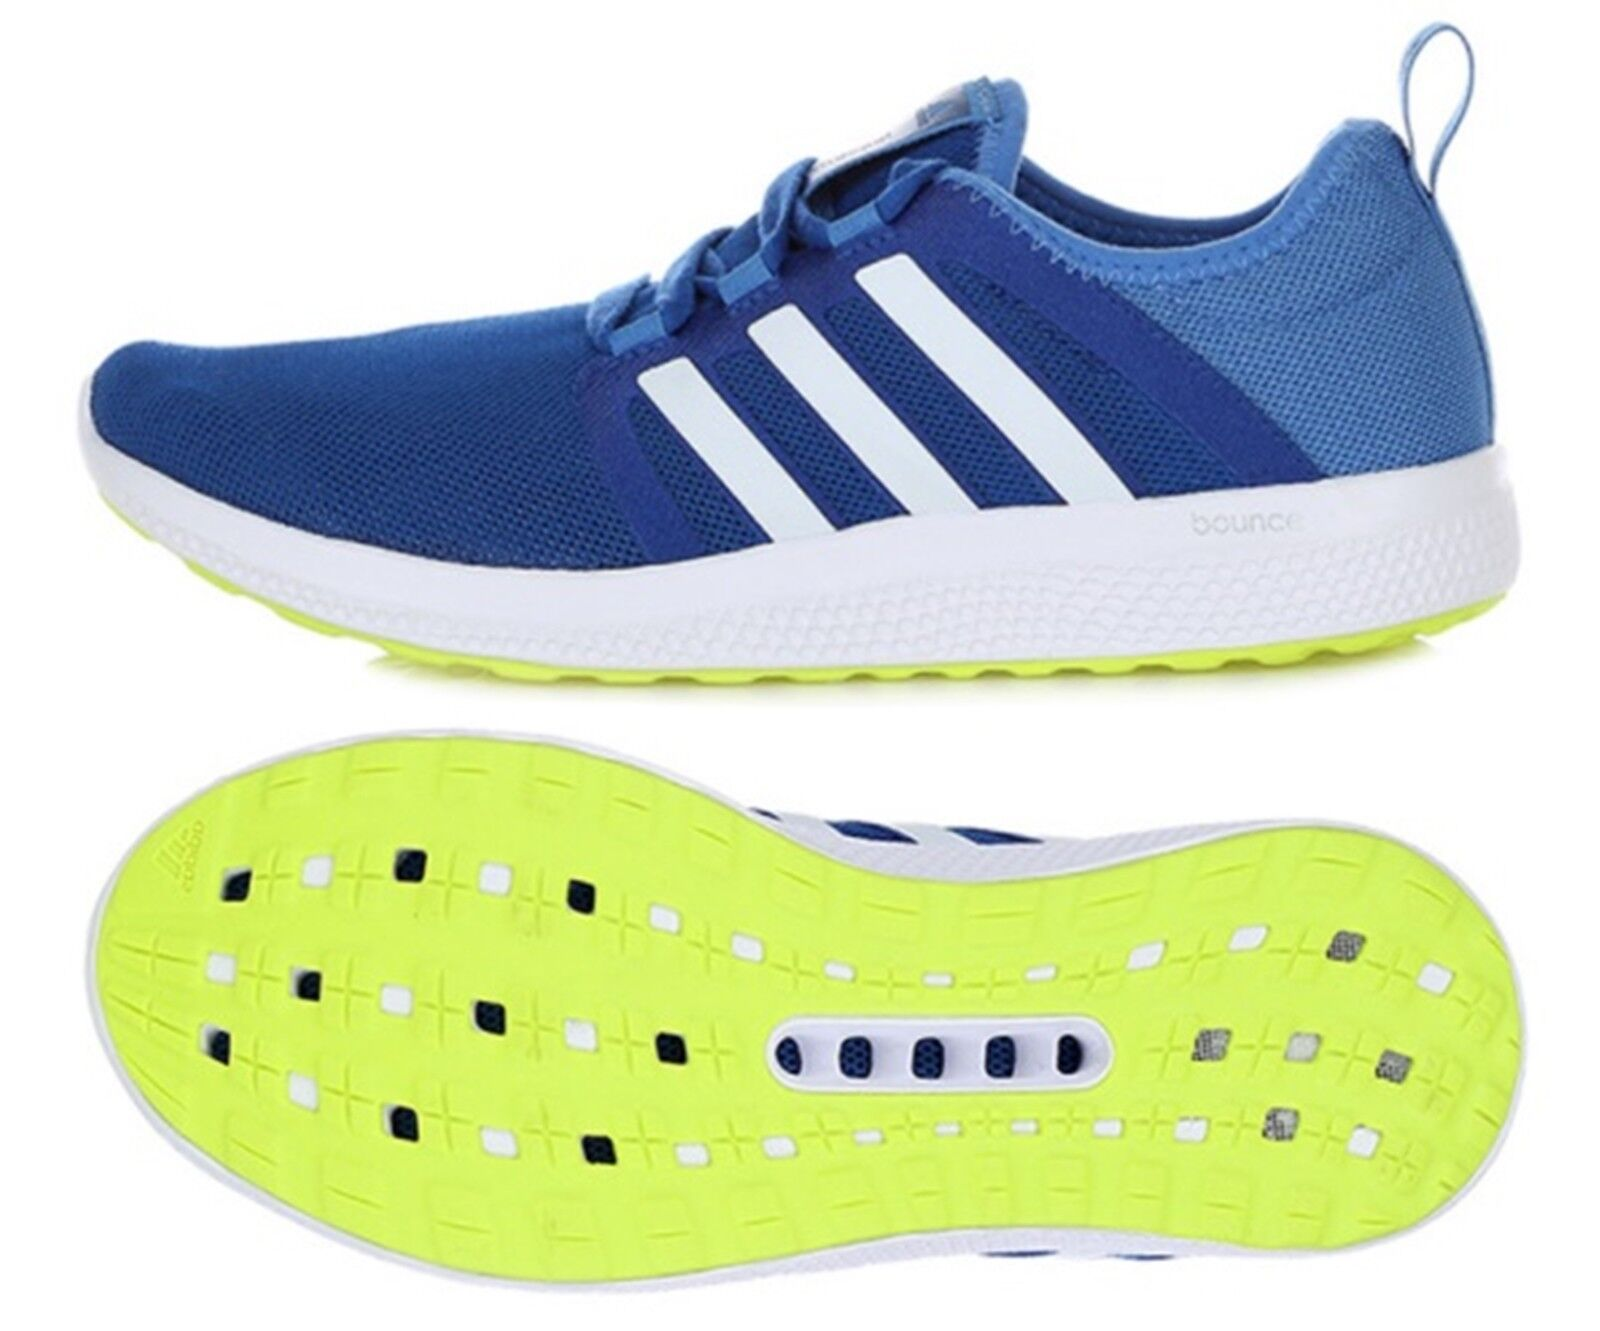 Adidas  Men Fresh Bounce Training shoes bluee White Running Sneakers shoes AQ3128  sale with high discount